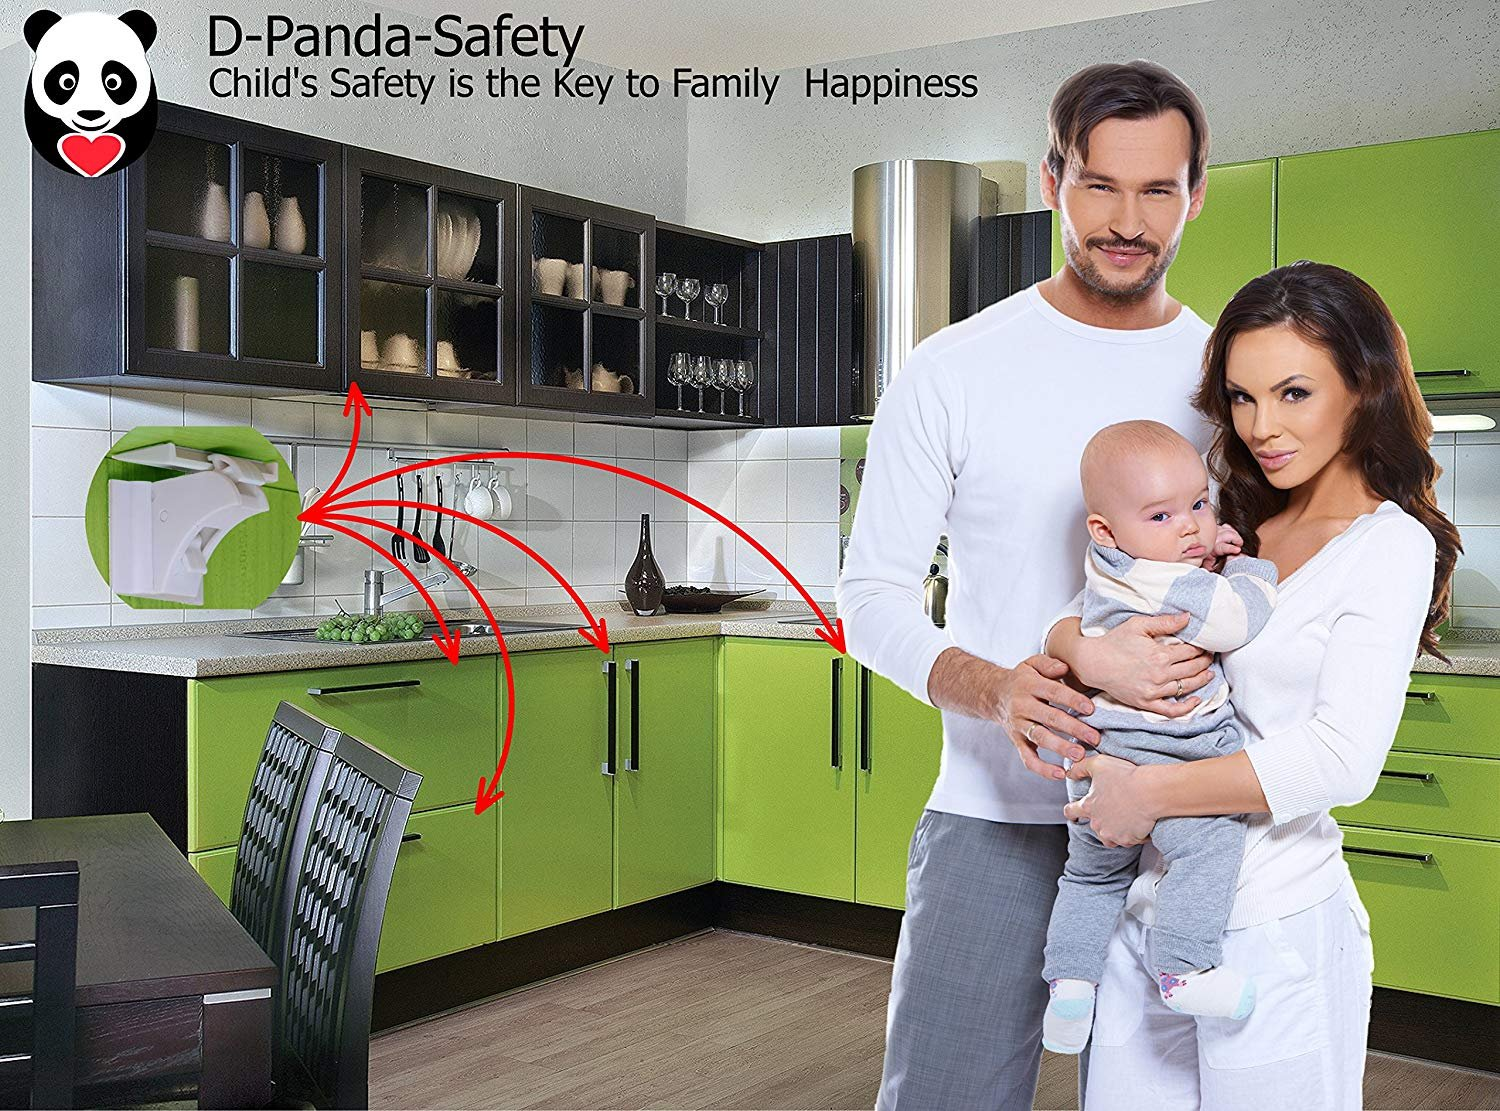 Child Safety Magnetic Cabinet Locks - Invisible Baby Proof Latch Set 8 Locks & 2 Keys Heavy Duty Locking System for Proofing Cabinets Drawers Doors Kitchen with 3M Adhesive (Tools aren't Required) by D-Panda-Safety (Image #7)